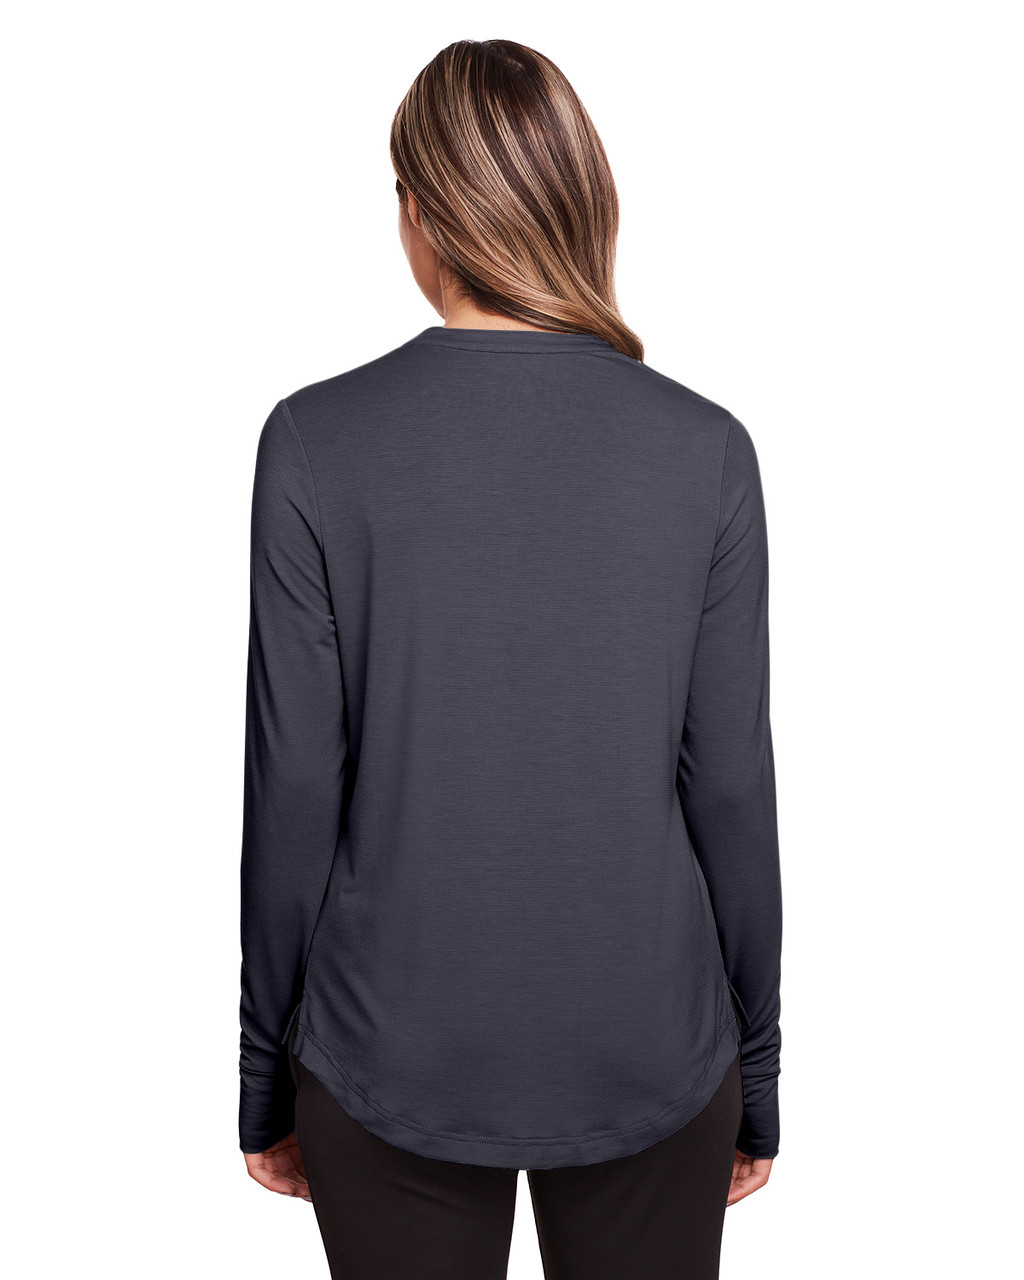 Carbon - Back, NE400W North End Ladies' Jaq Snap-Up Stretch Performance Pullover Long Sleeve Shirt | BlankClothing.ca